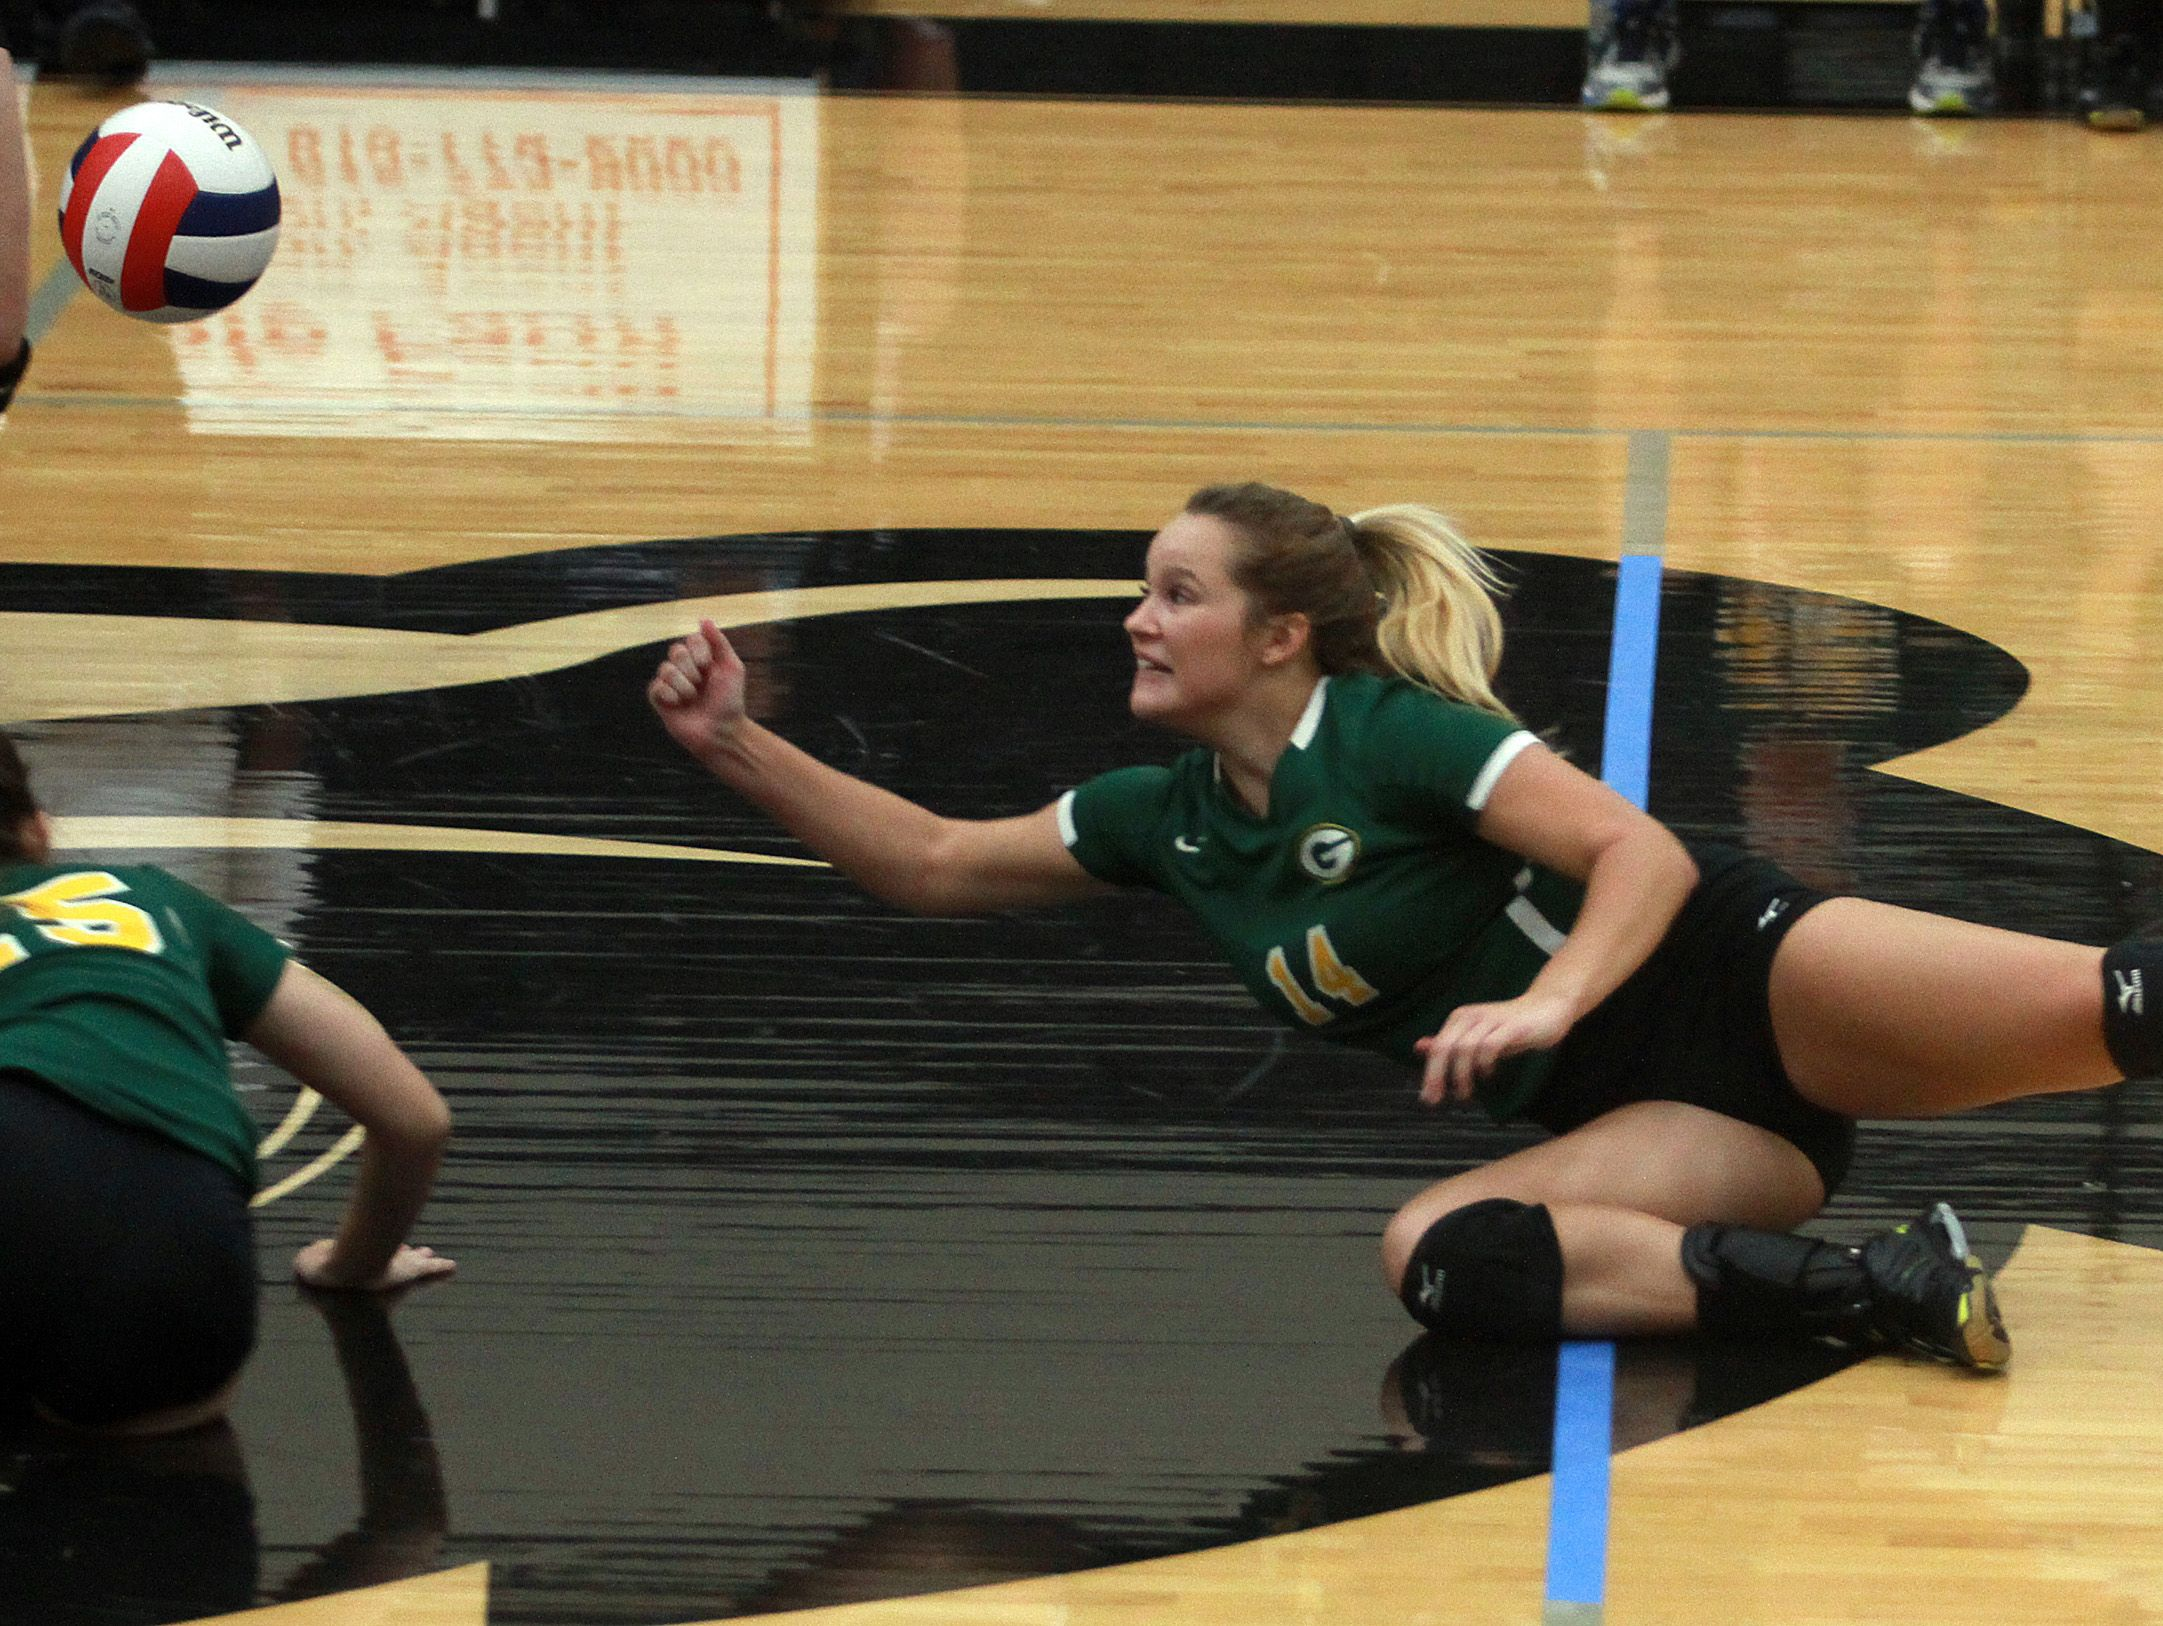 Gallatin's Haley Bowling dives to make a save against Mt. Juliet during Monday's District 9-AAA Tournament quarterfinals.